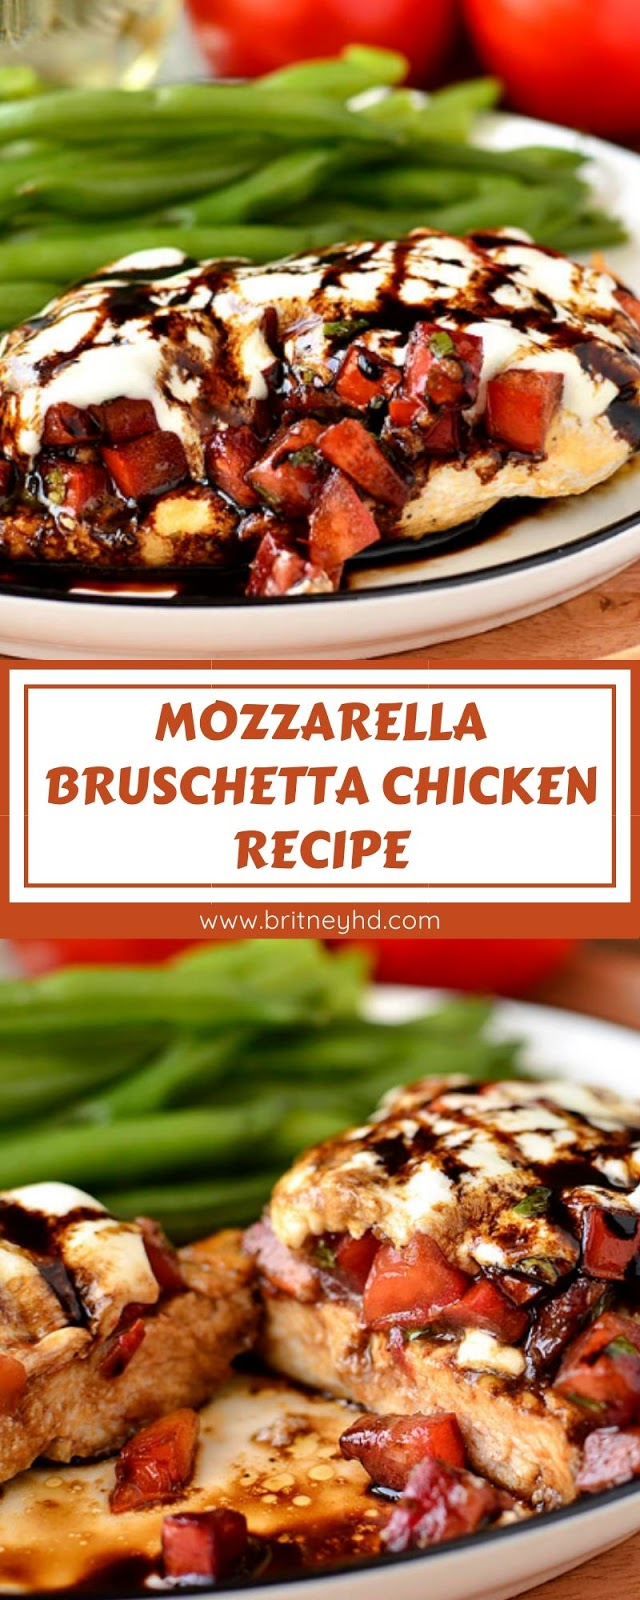 MOZZARELLA BRUSCHETTA CHICKEN RECIPE